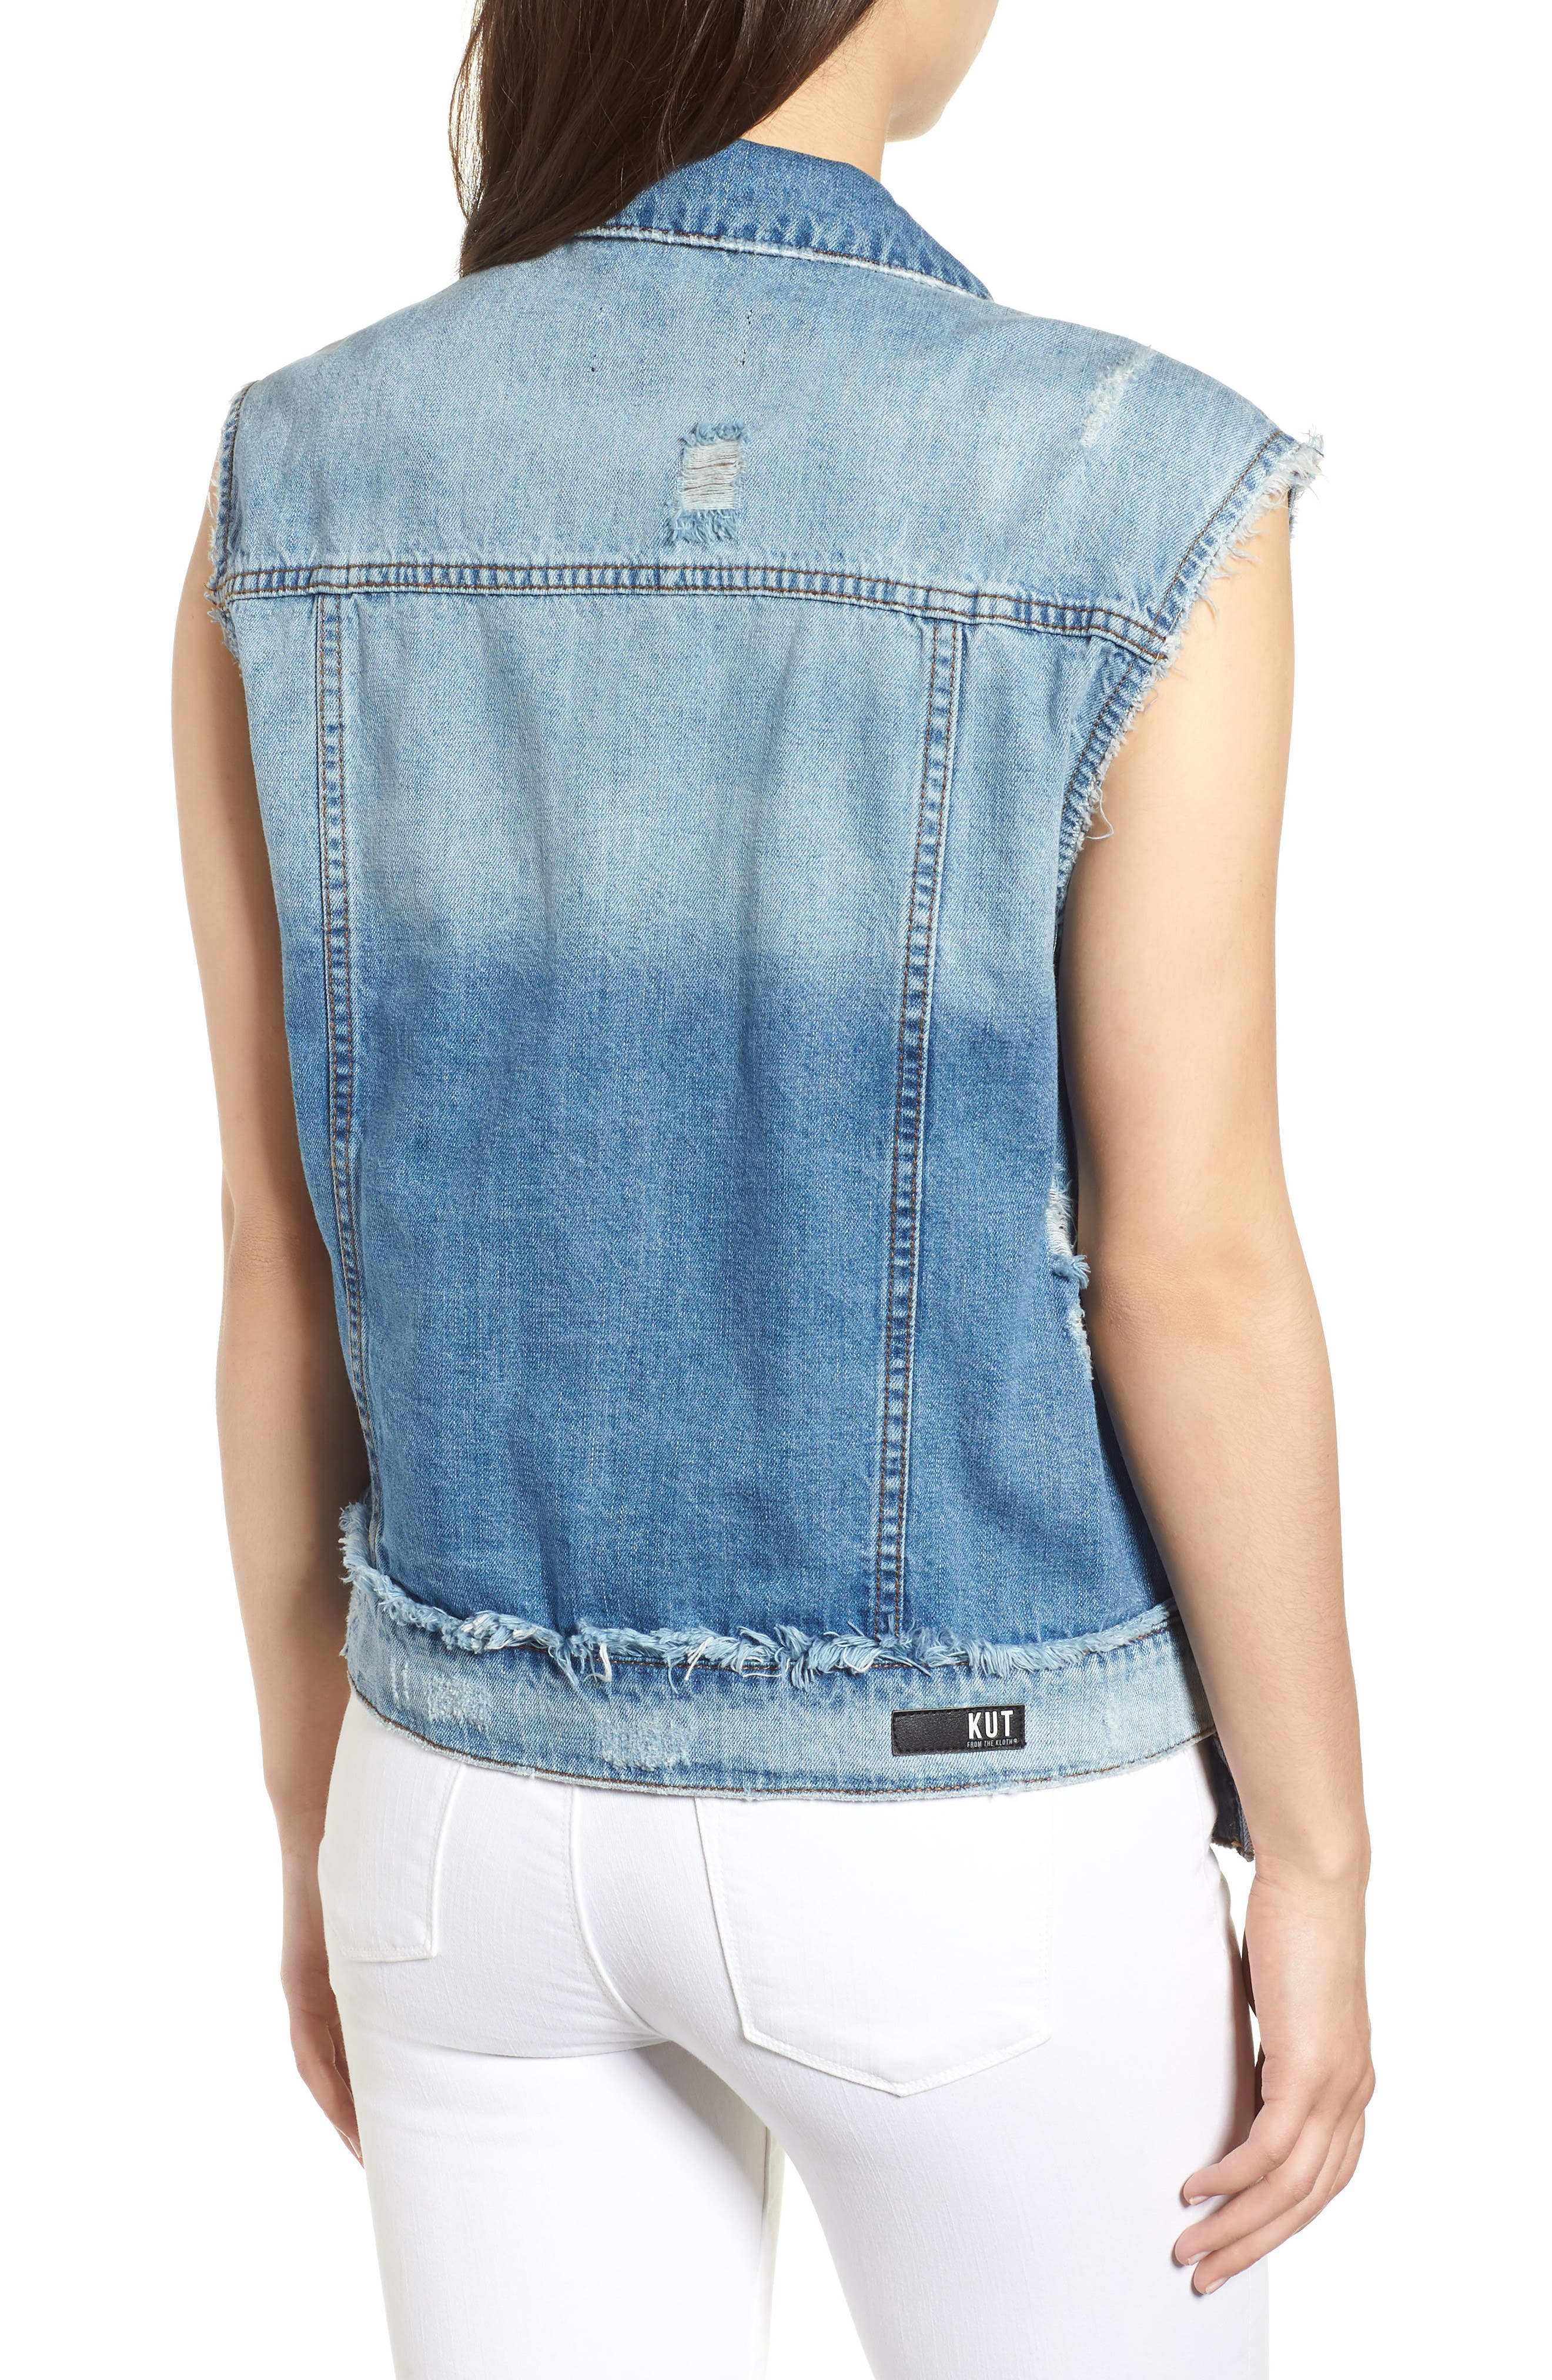 KUT from the Kloth Denim Vest,                             Alternate thumbnail 2, color,                             Augmented